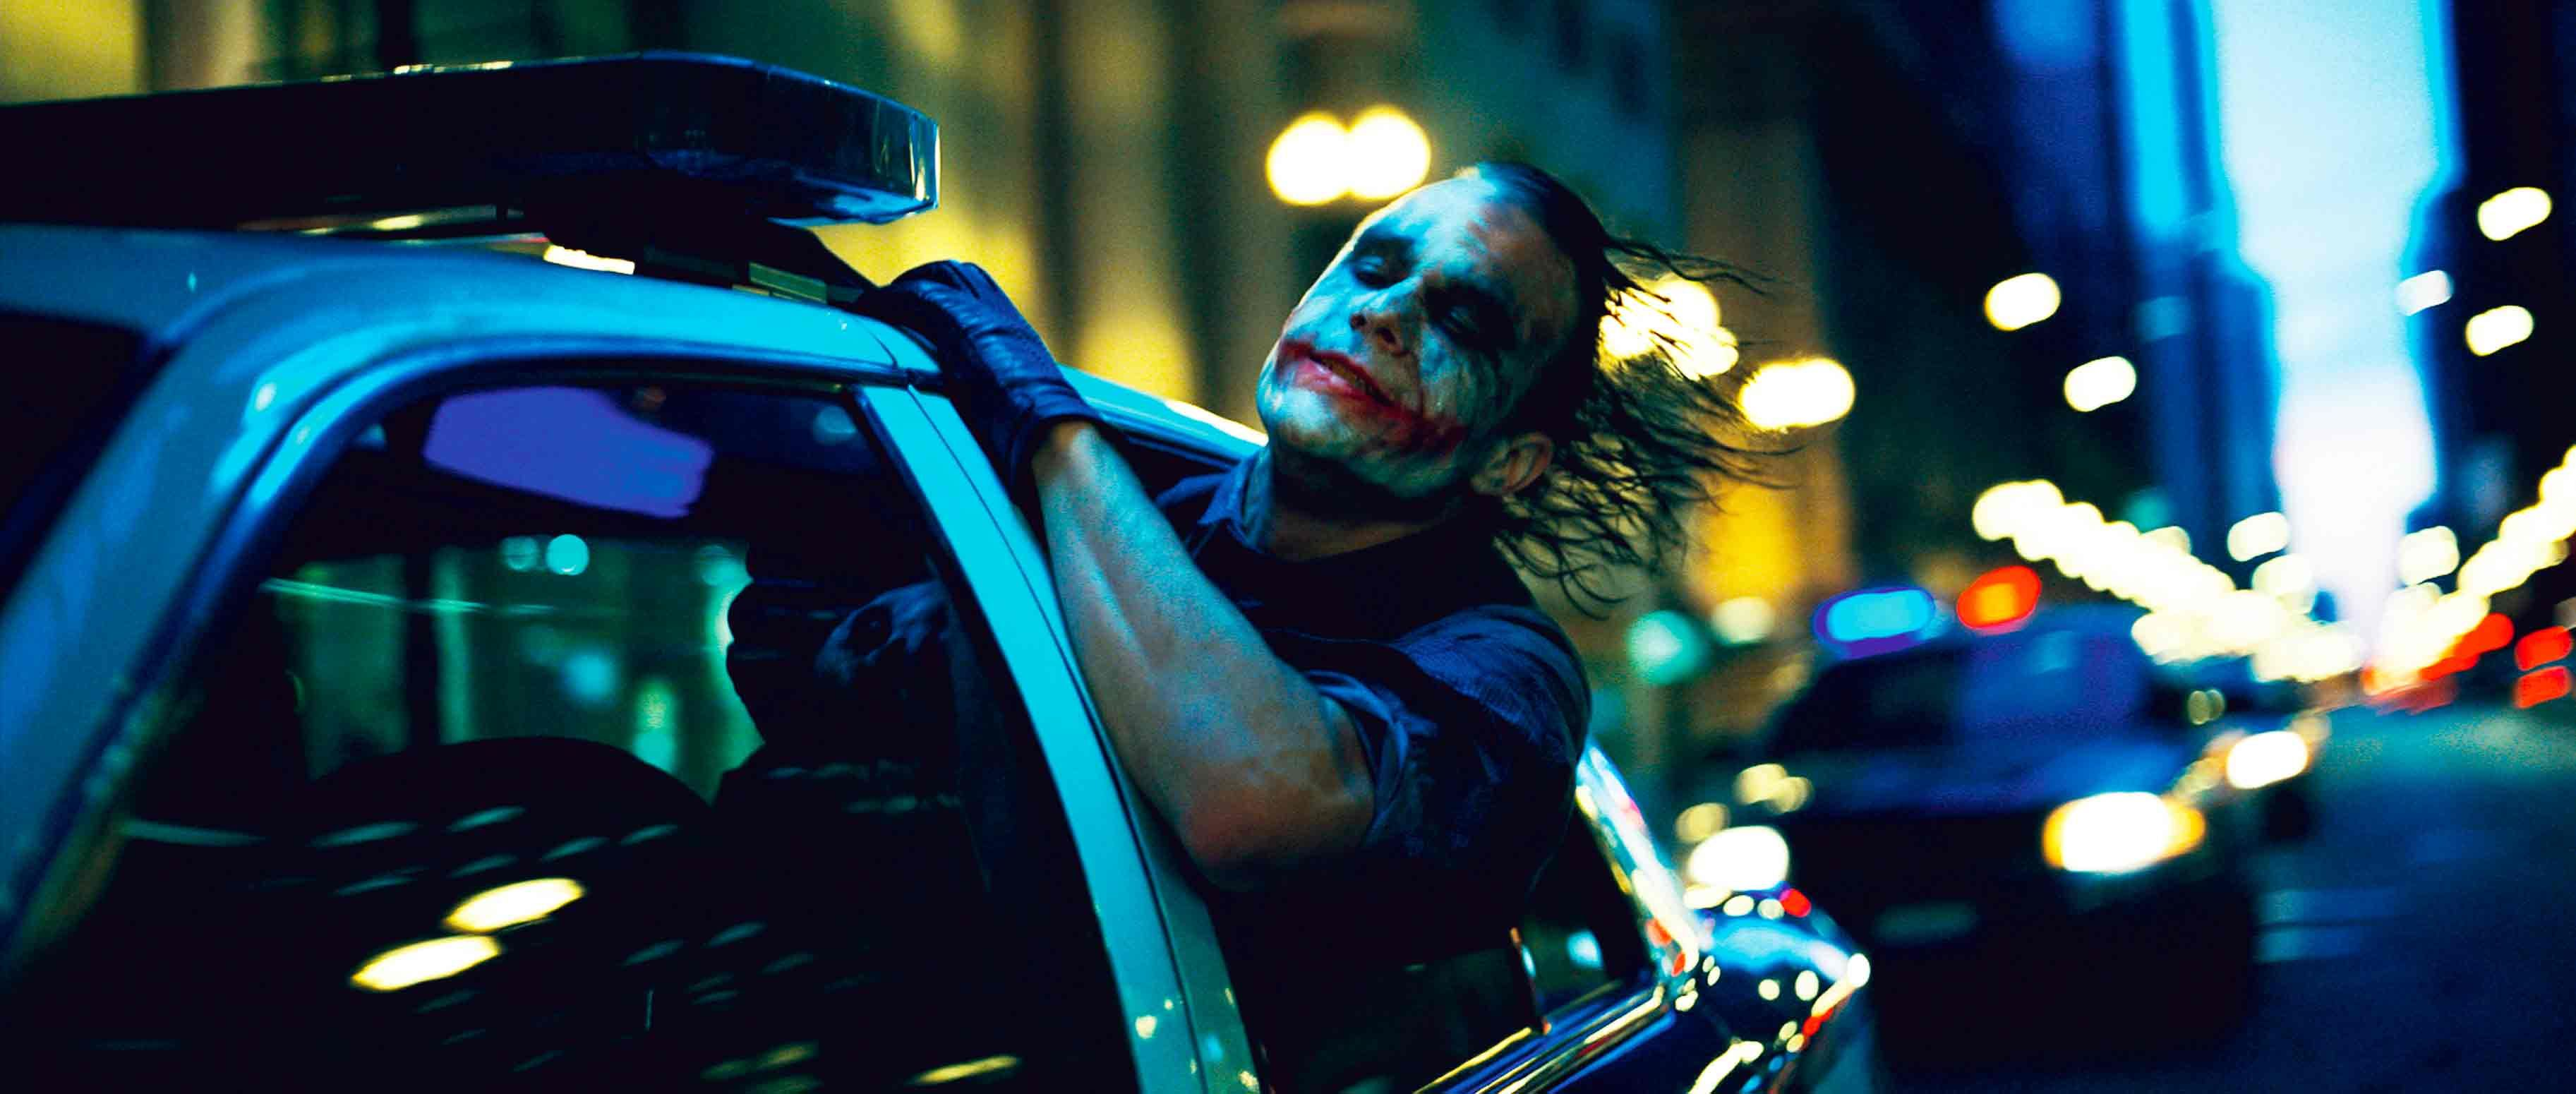 El Joker no mató a Heath Ledger